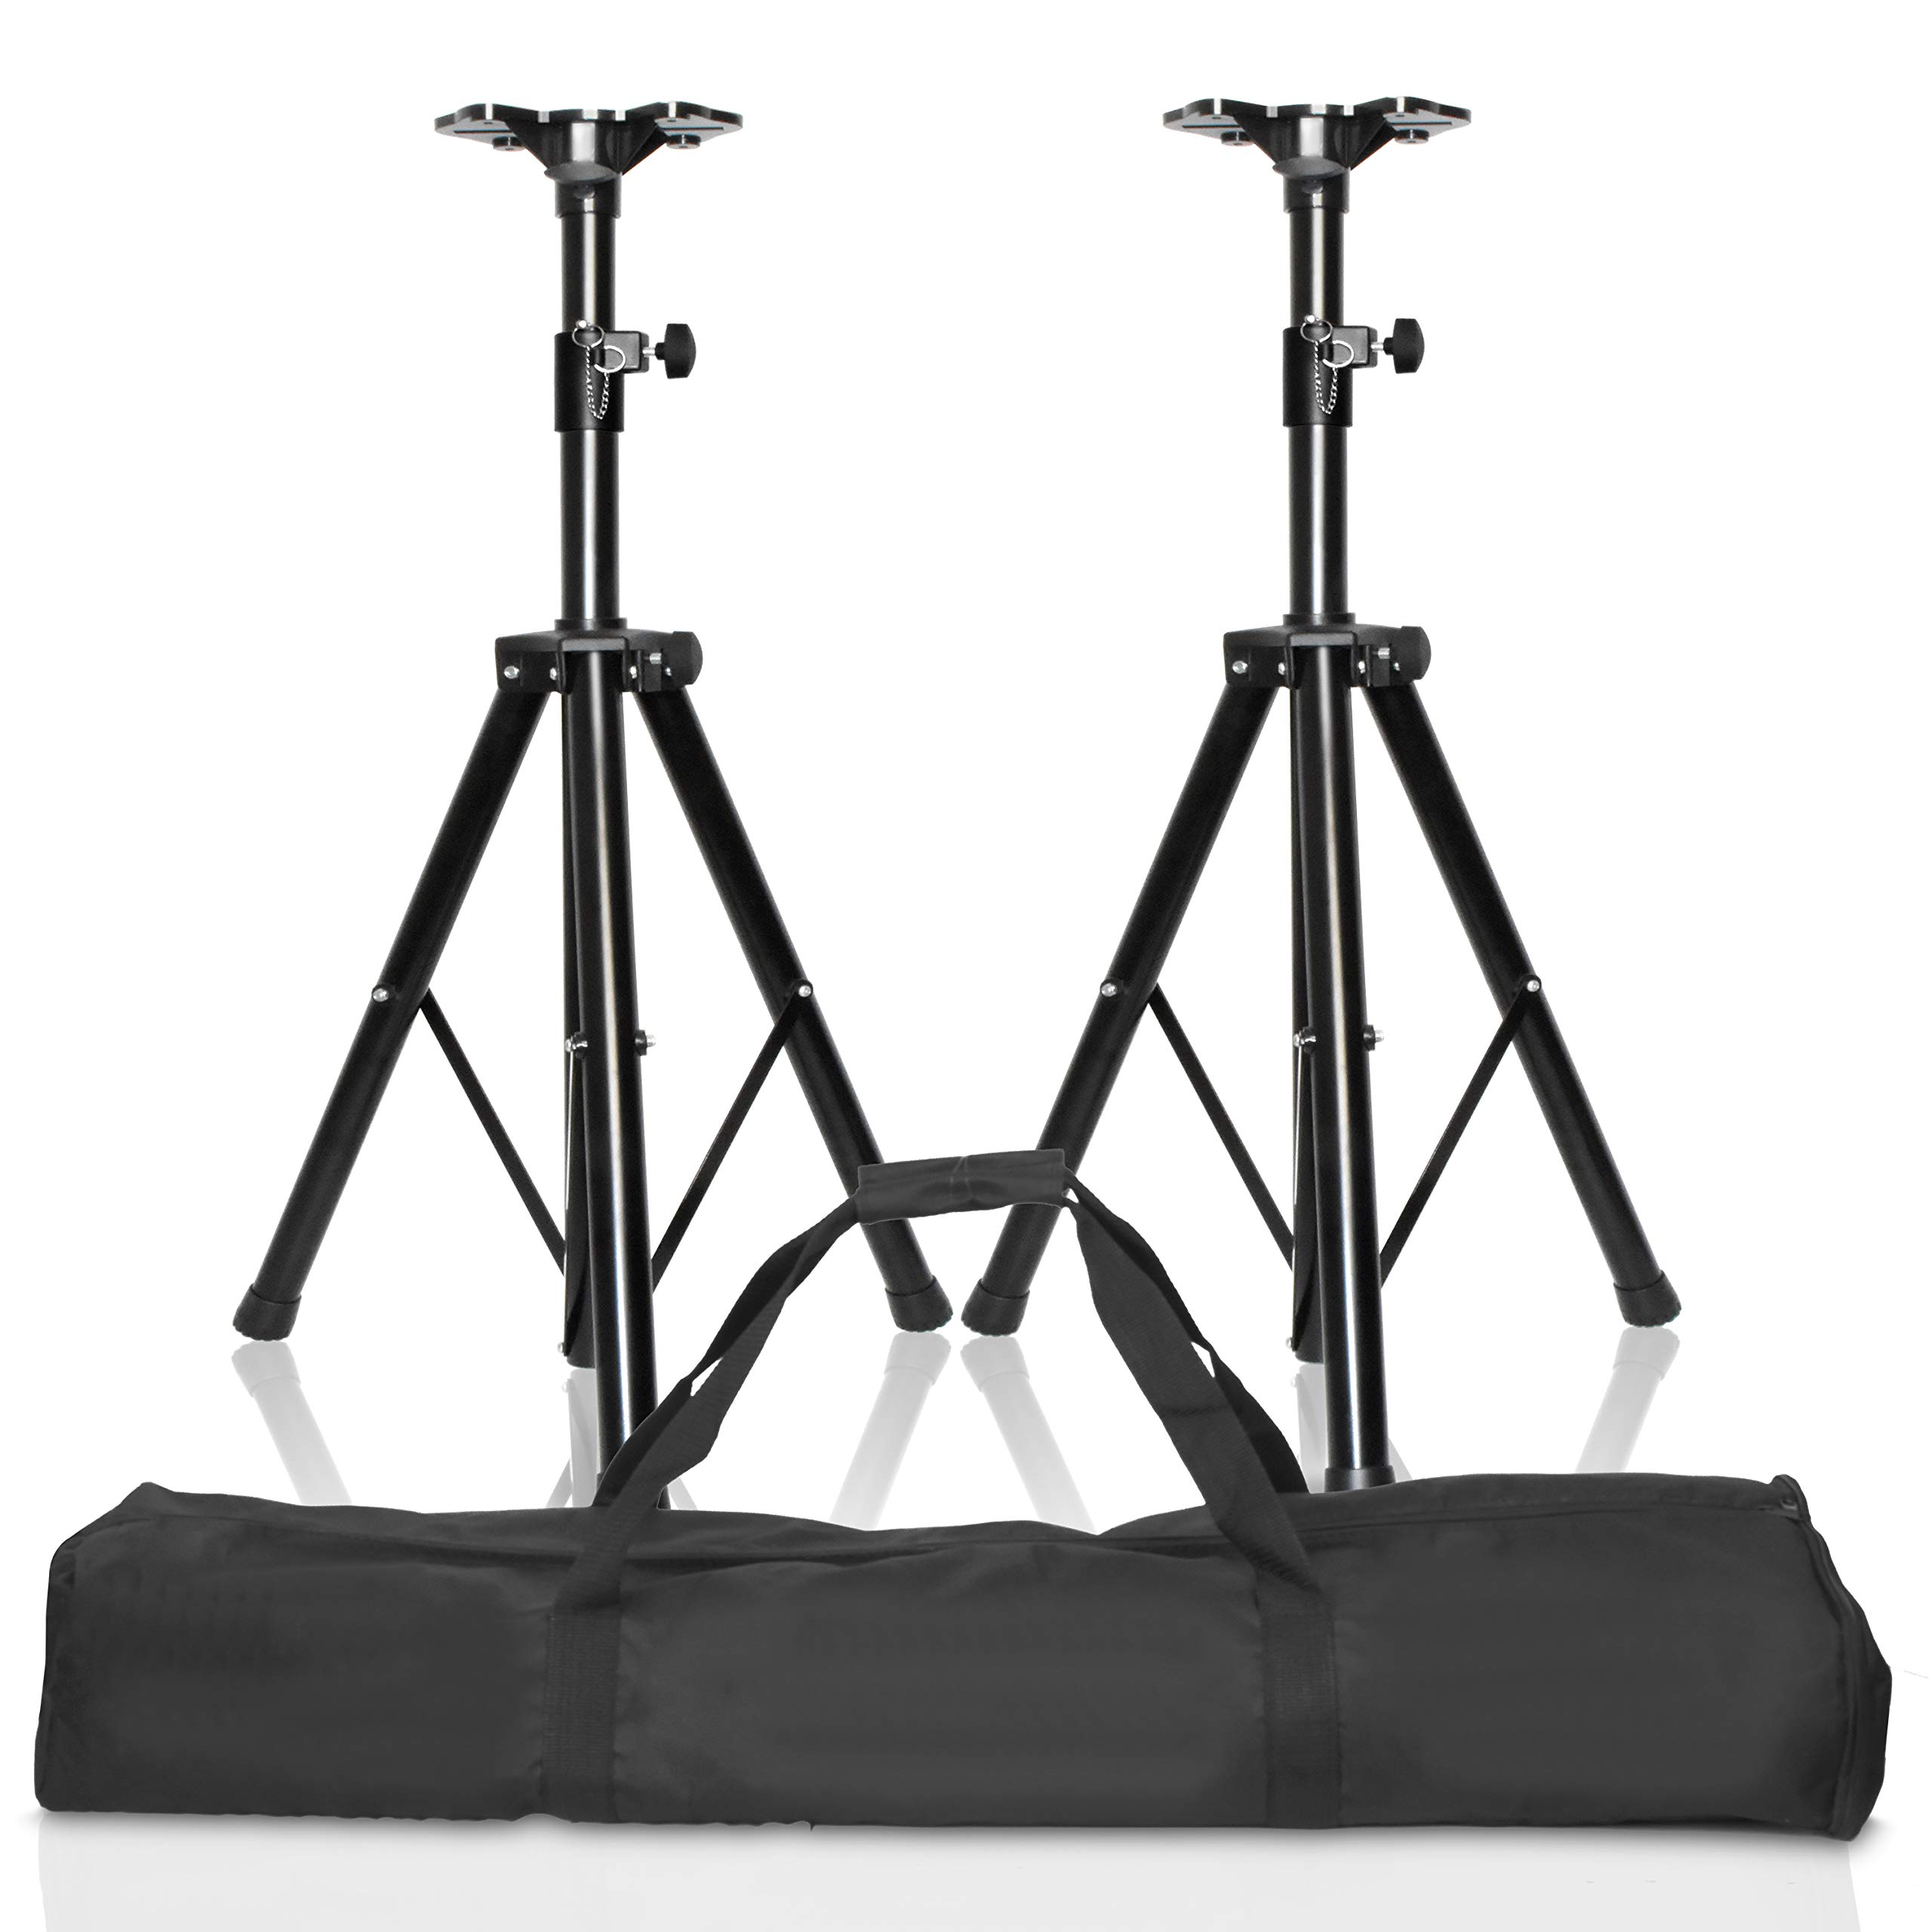 EMART Adjustable Height Speaker Stands, Professional Heavy Duty Tripod Structure Holds Weight up to 132 lbs, Extend from 38 to 71 inch DJ PA Speaker Stands by EMART